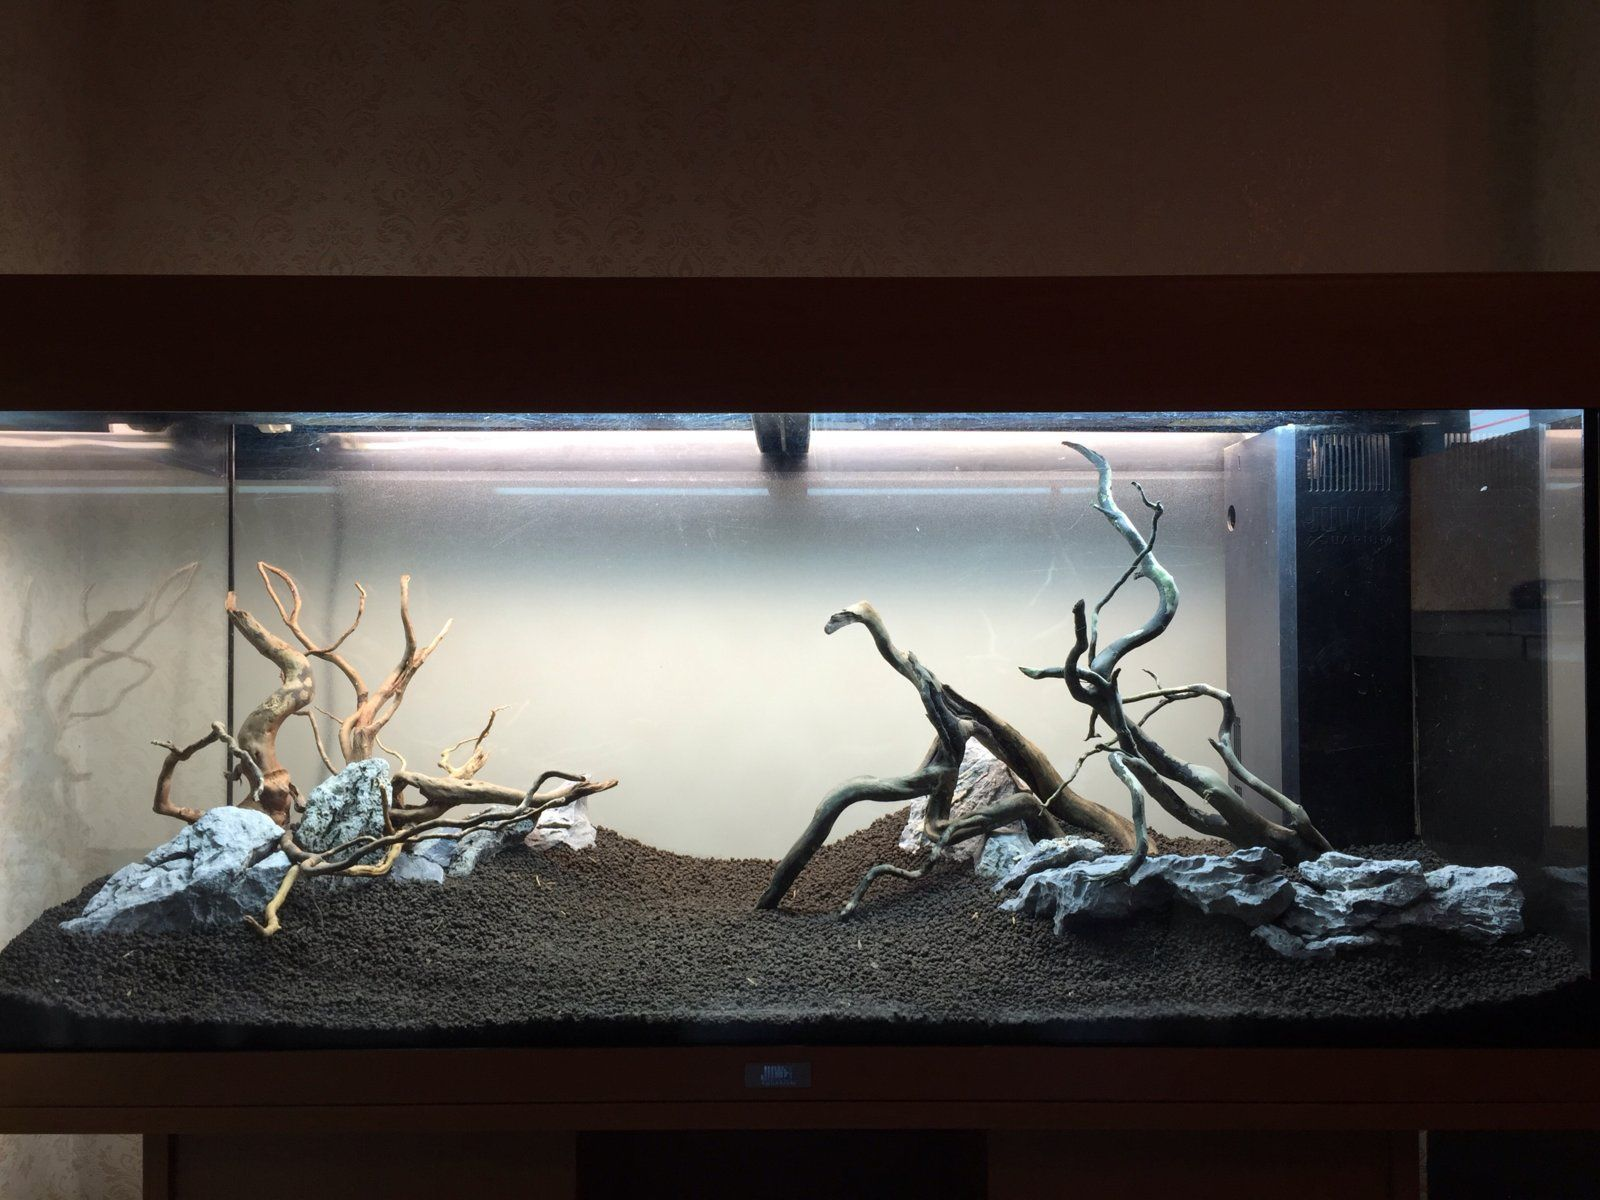 New RIMLESS 120 gallon build what is a must have on a new build